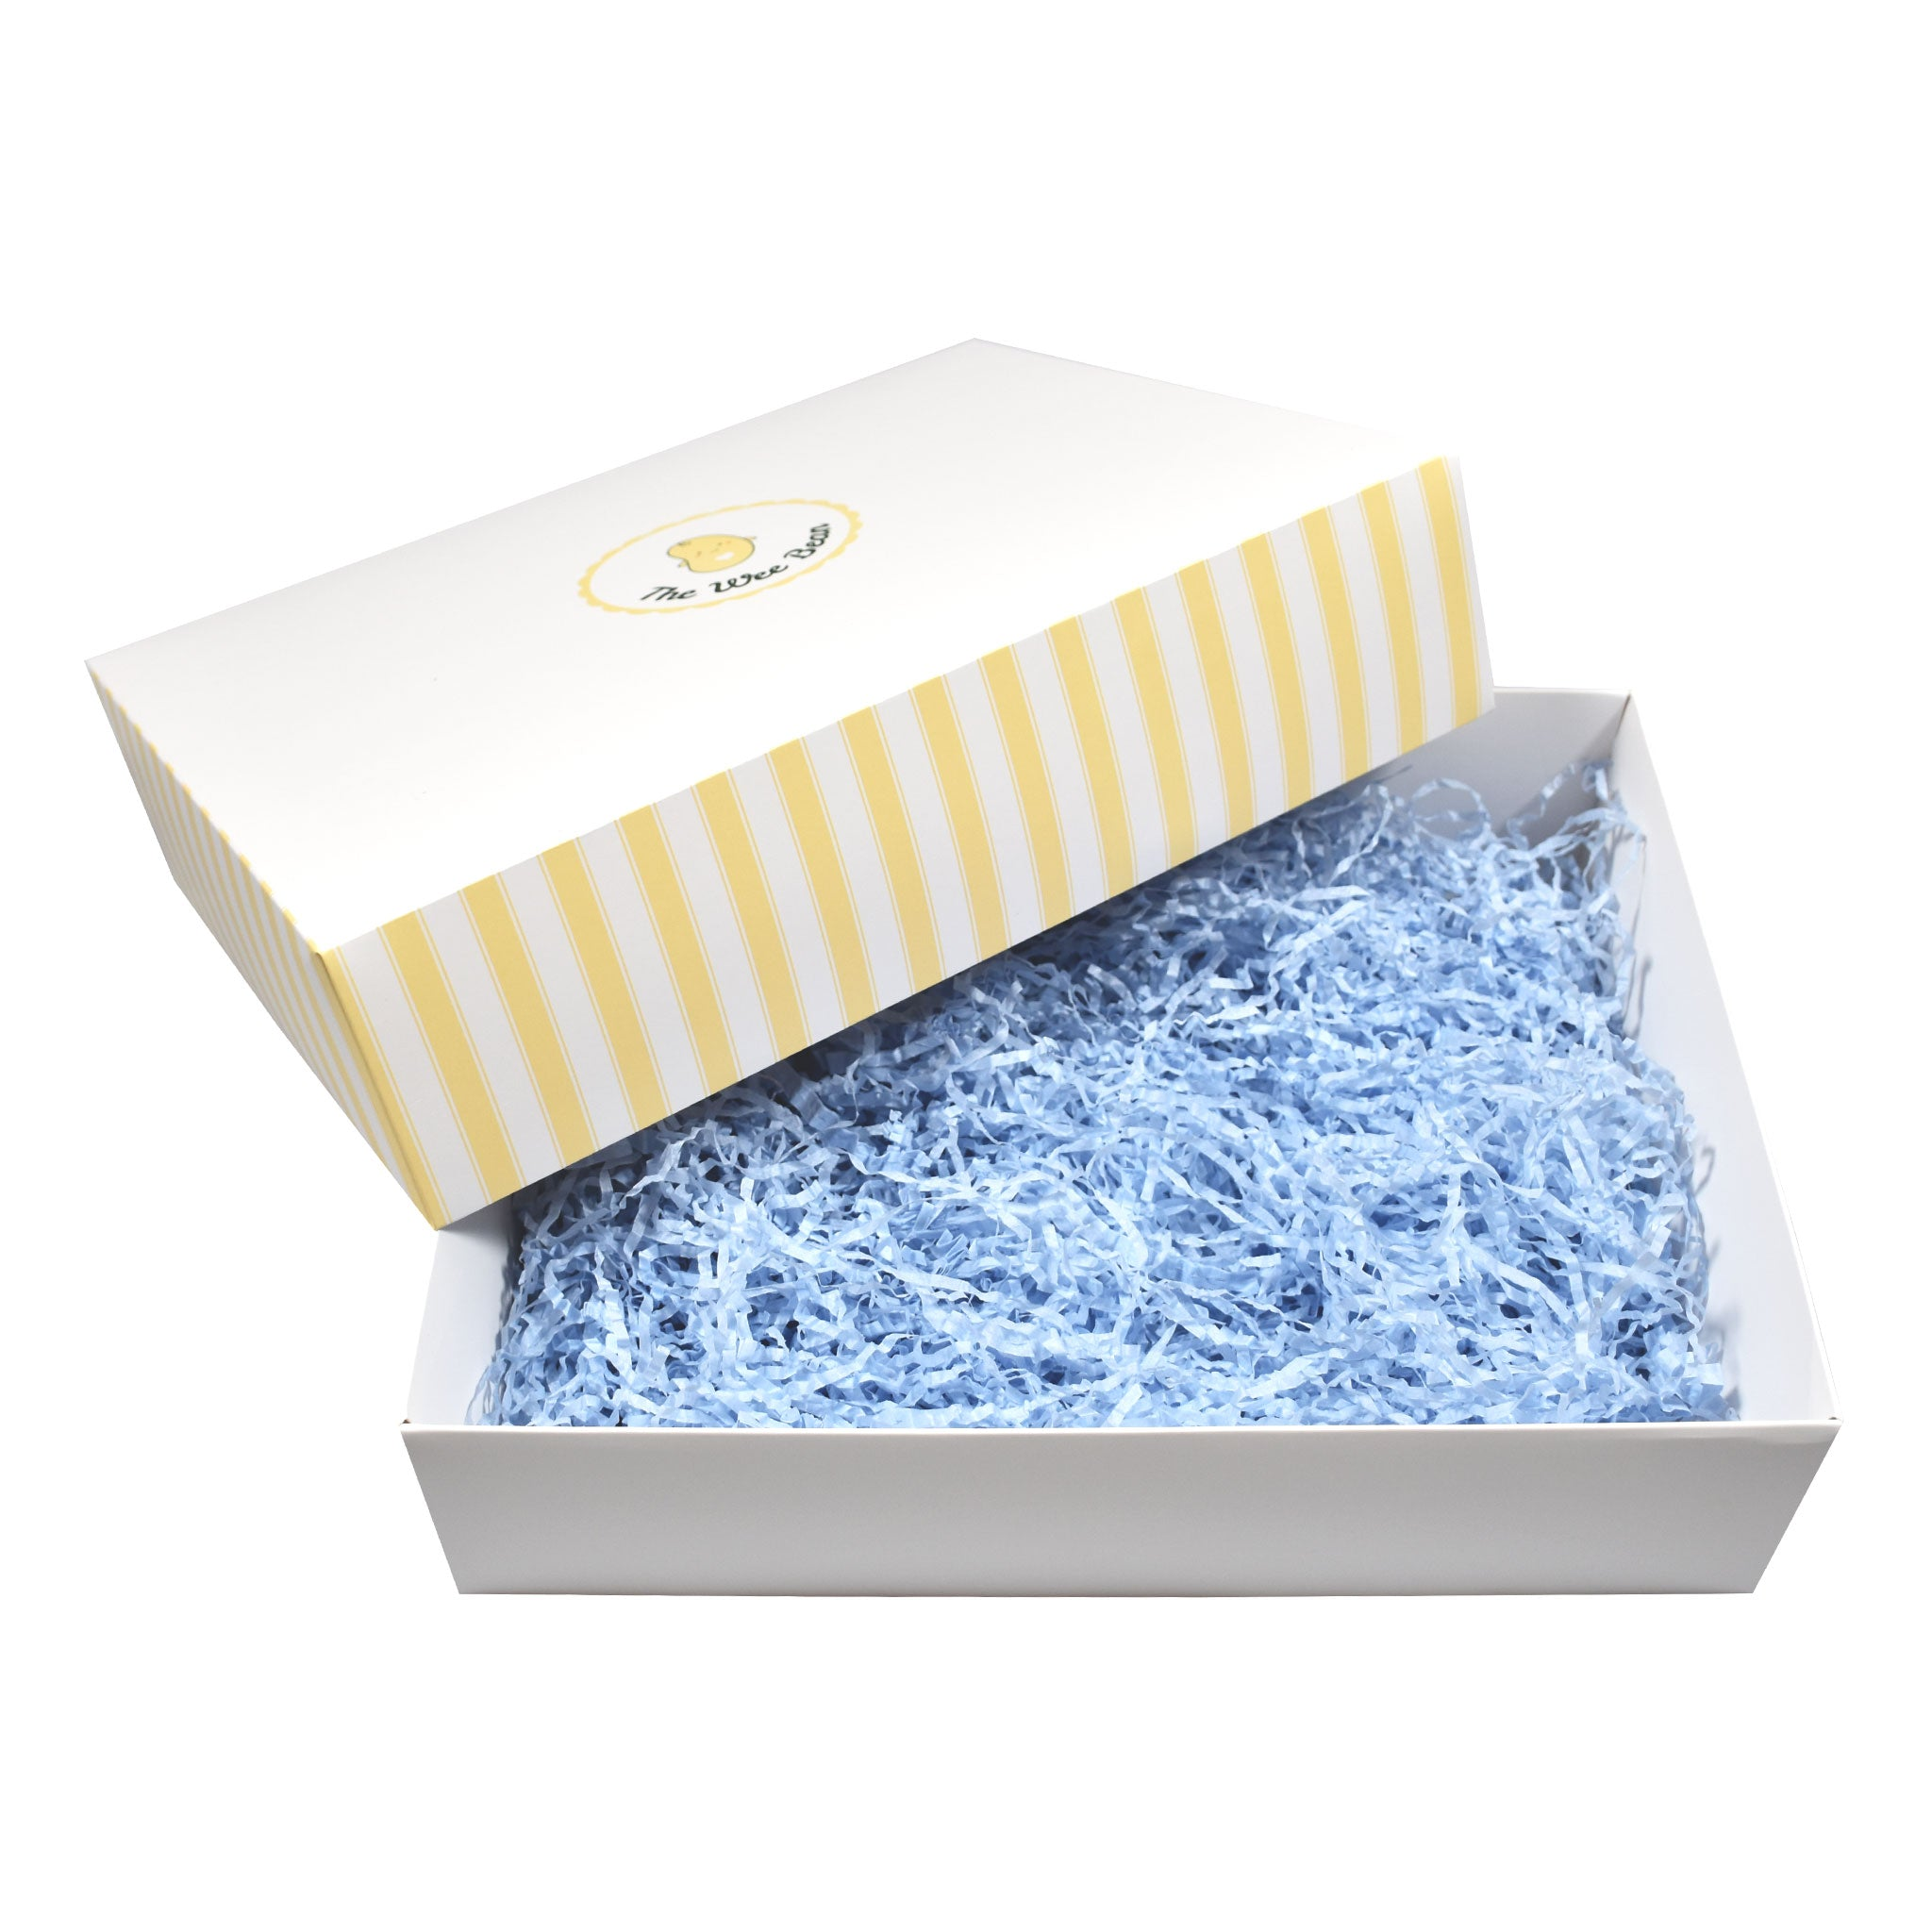 Create Your Own Gift Set Gift Box - The Wee Bean